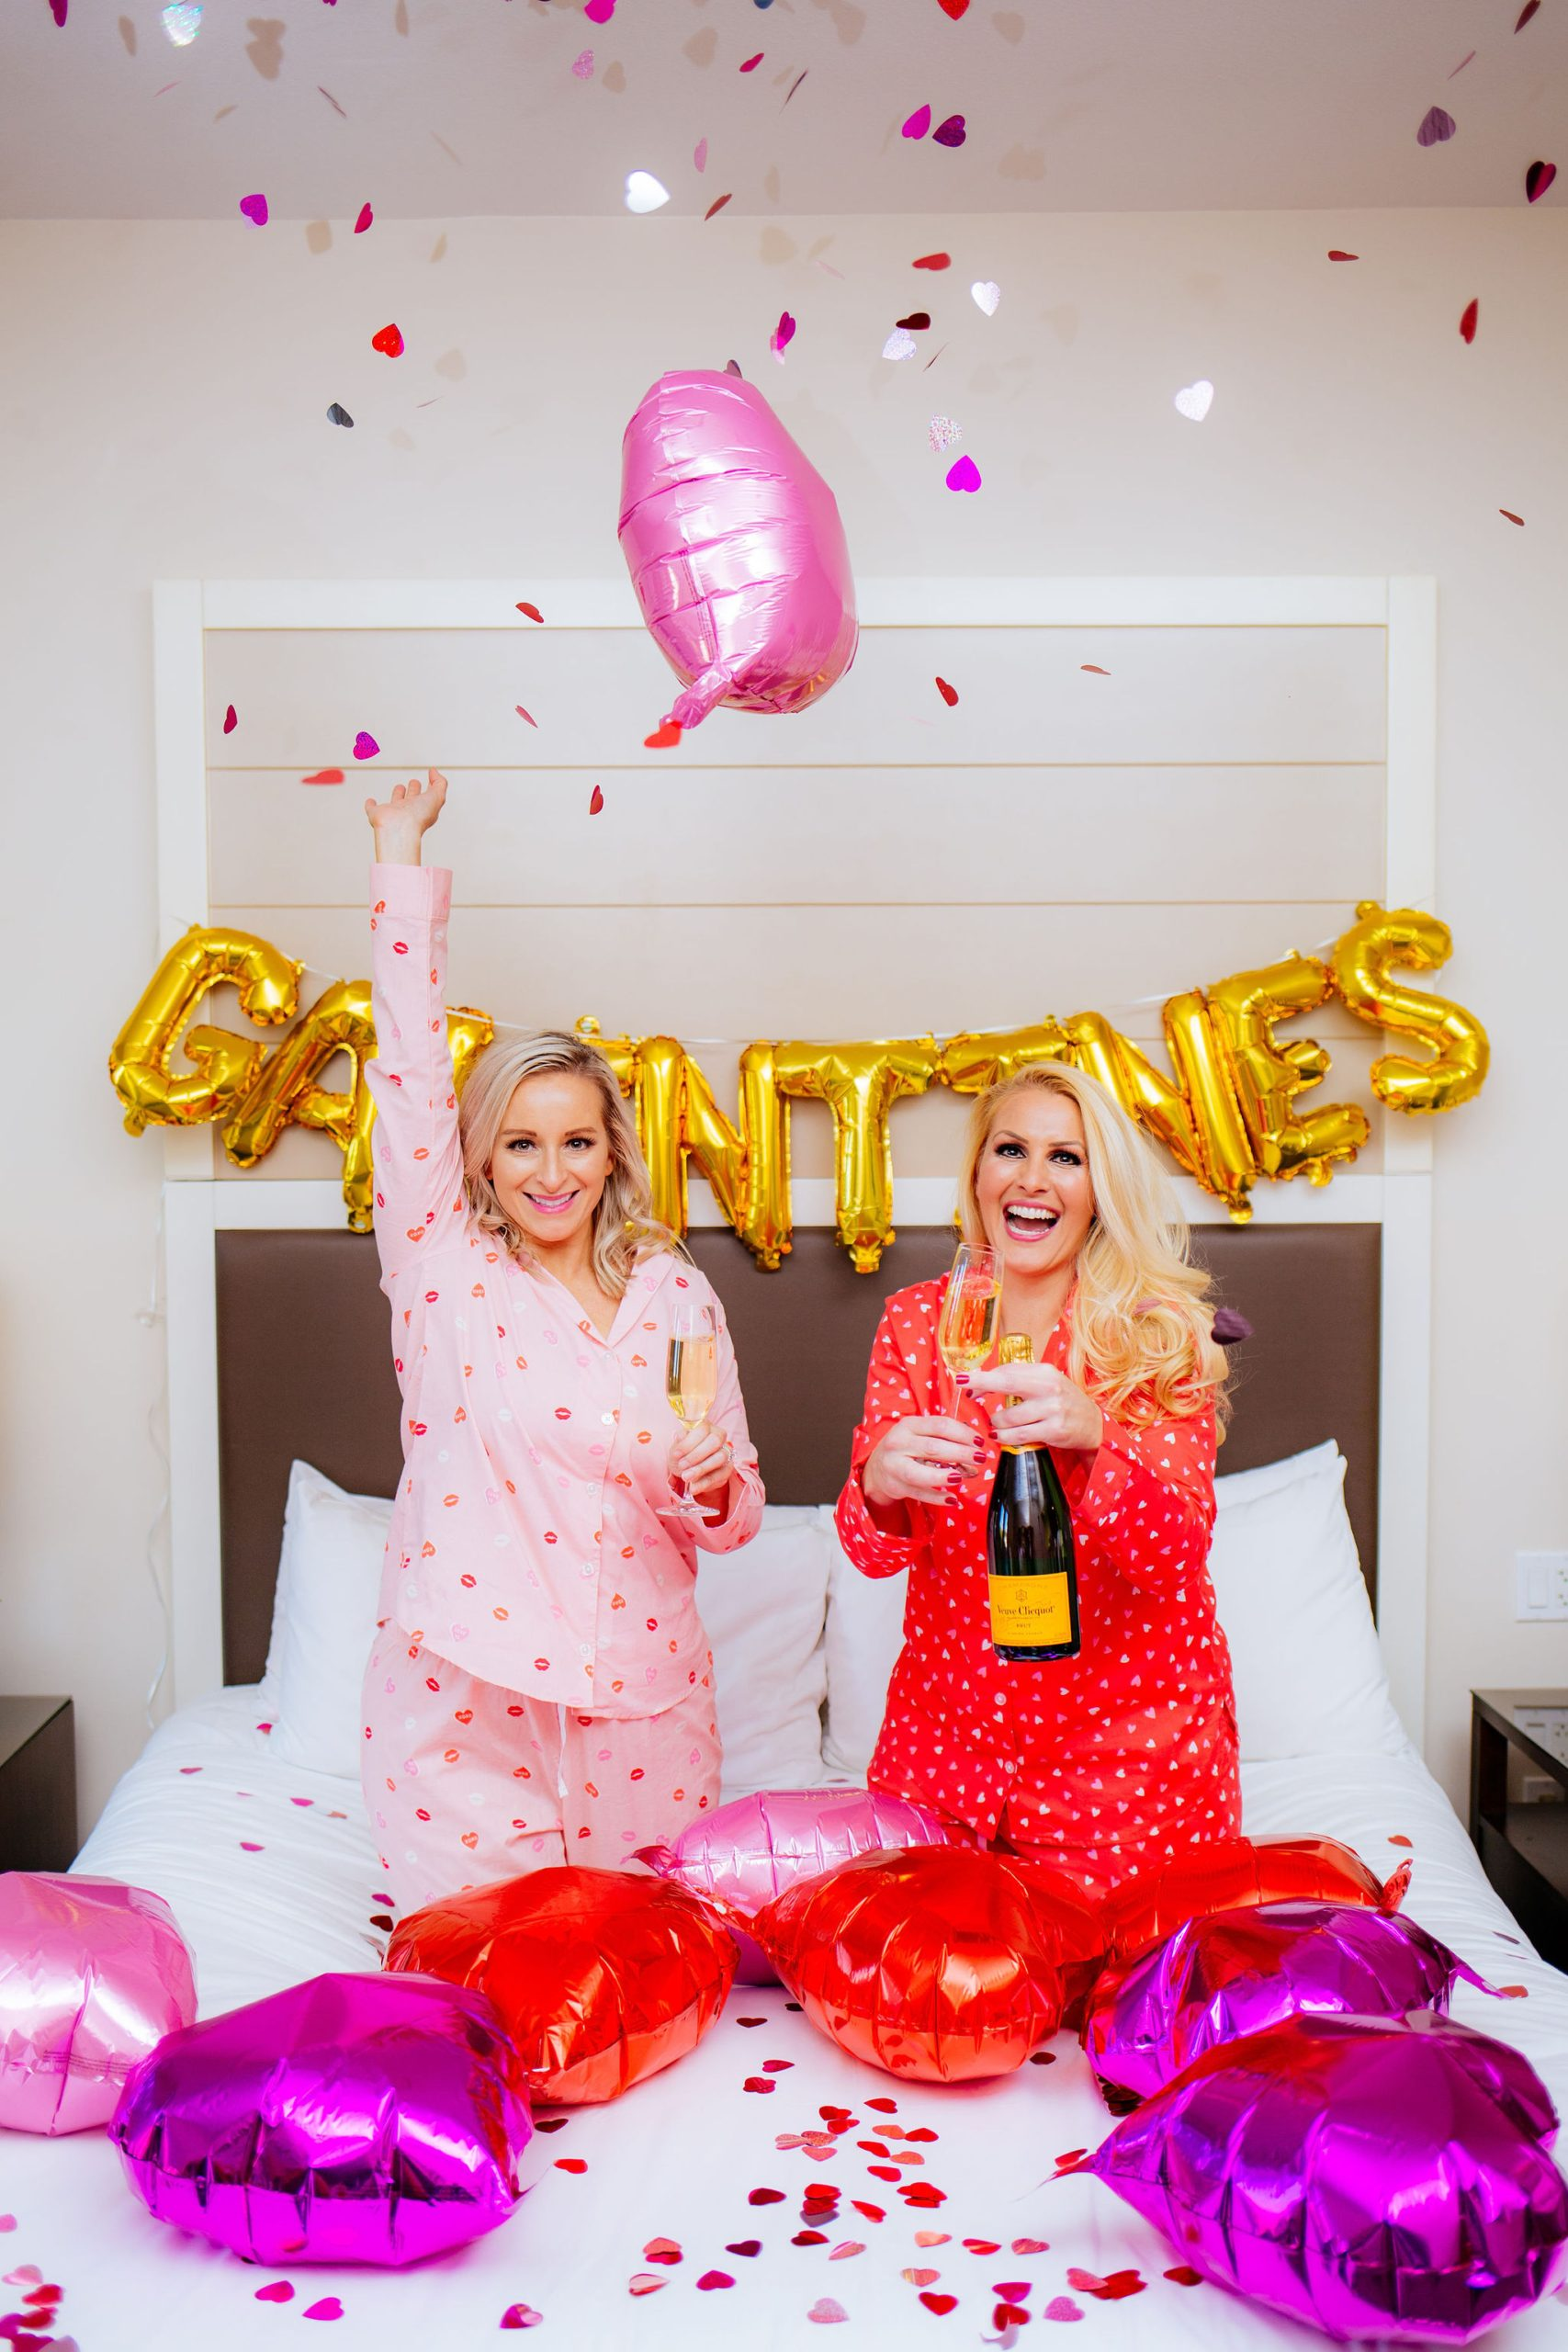 Epicurean Hotel, Autograph Collection in Old Navy Valentine's day pajamas